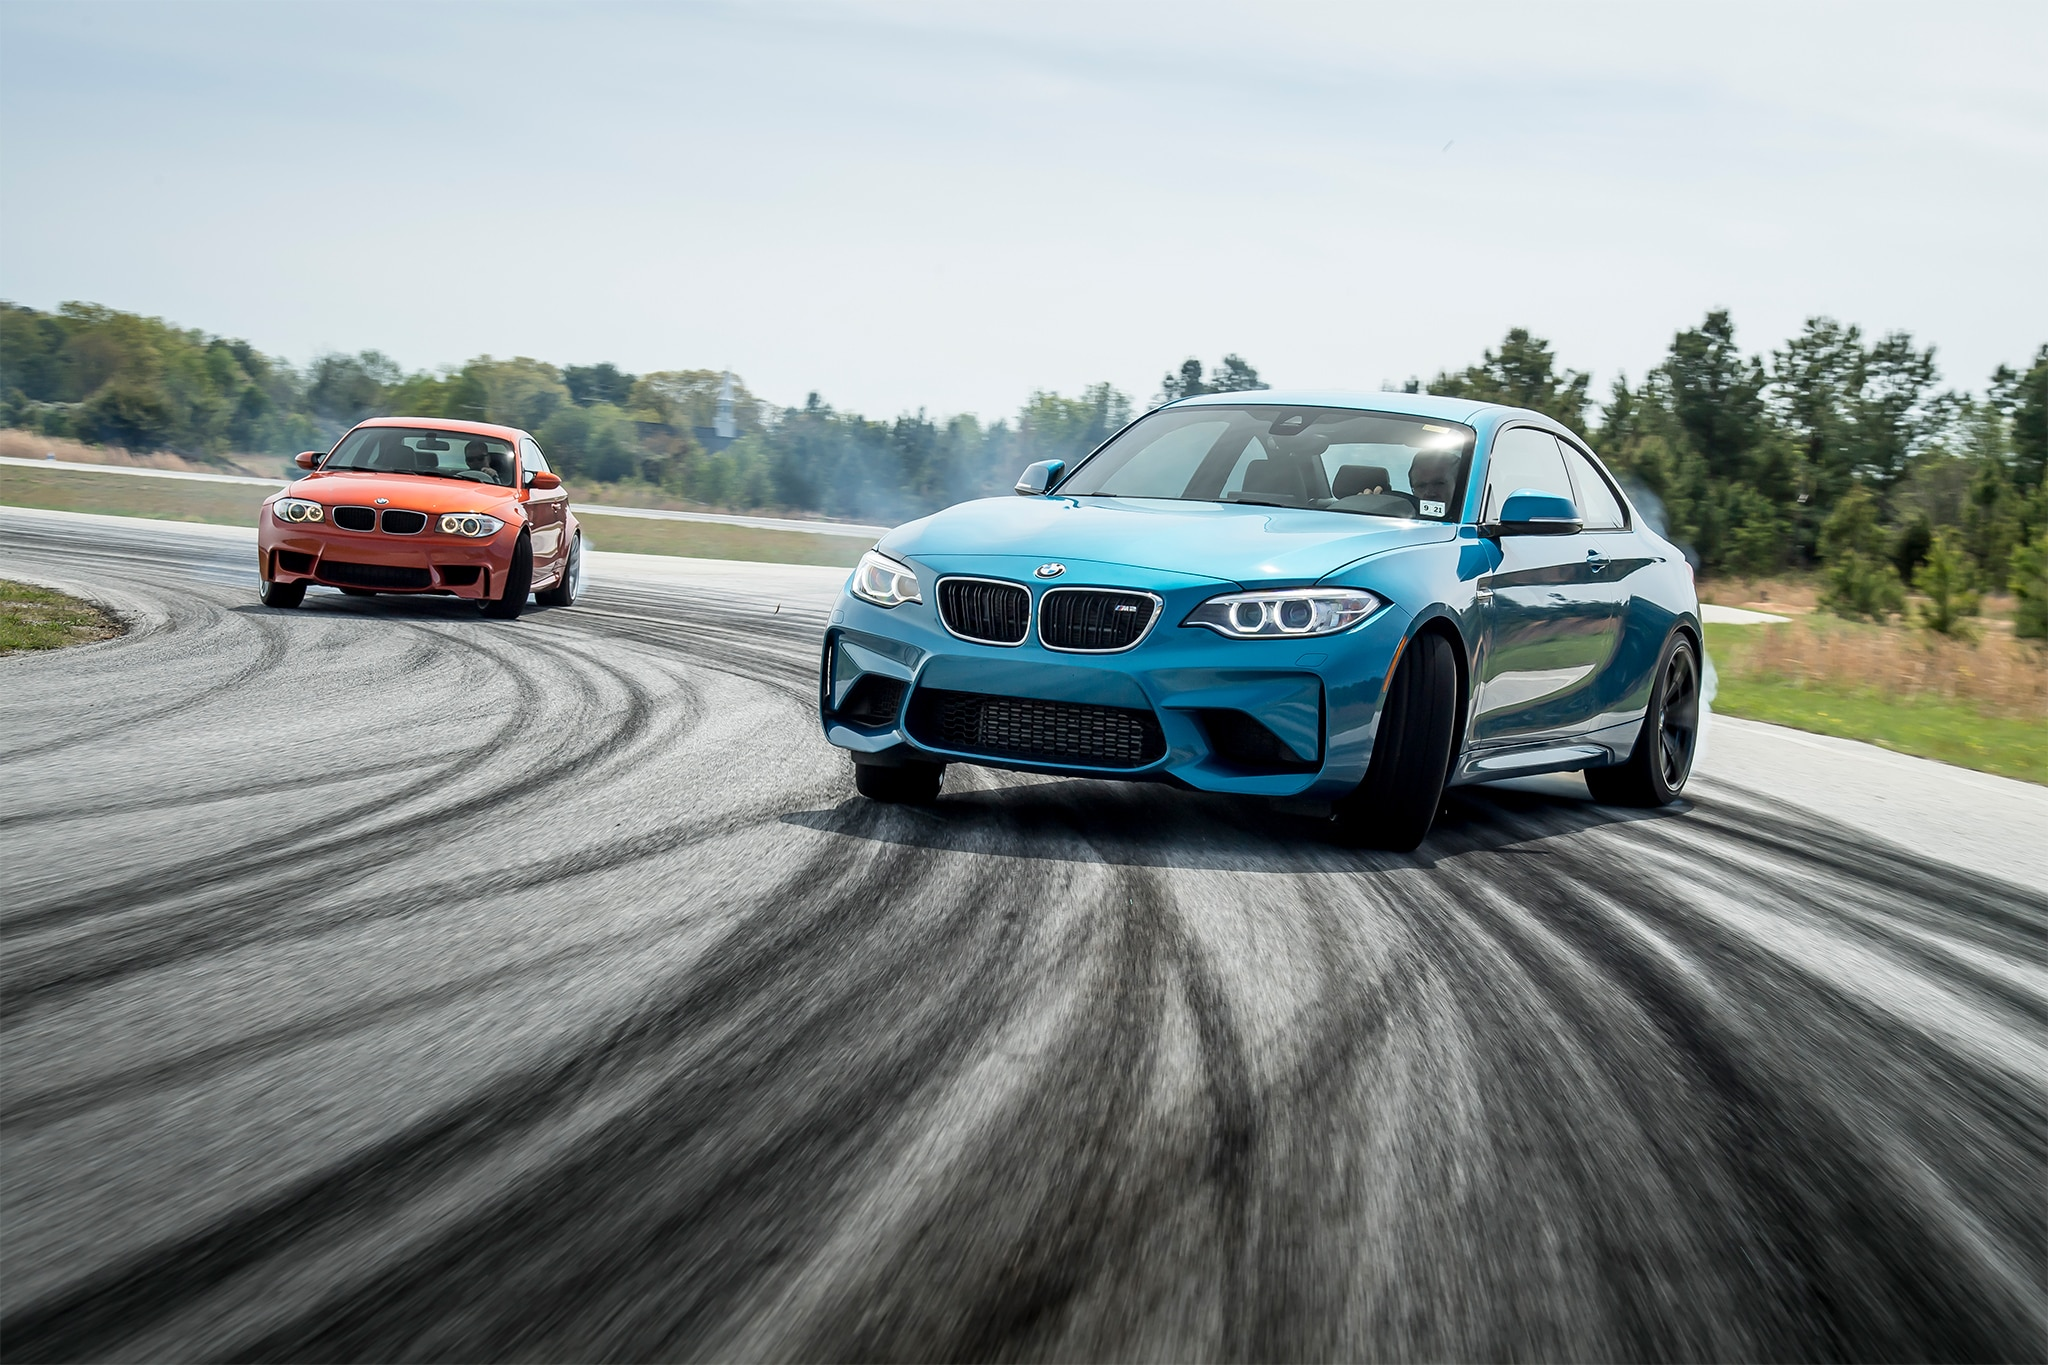 2 vs 1 Our Four Seasons BMW M2 Travels to the Carolinas to Meet